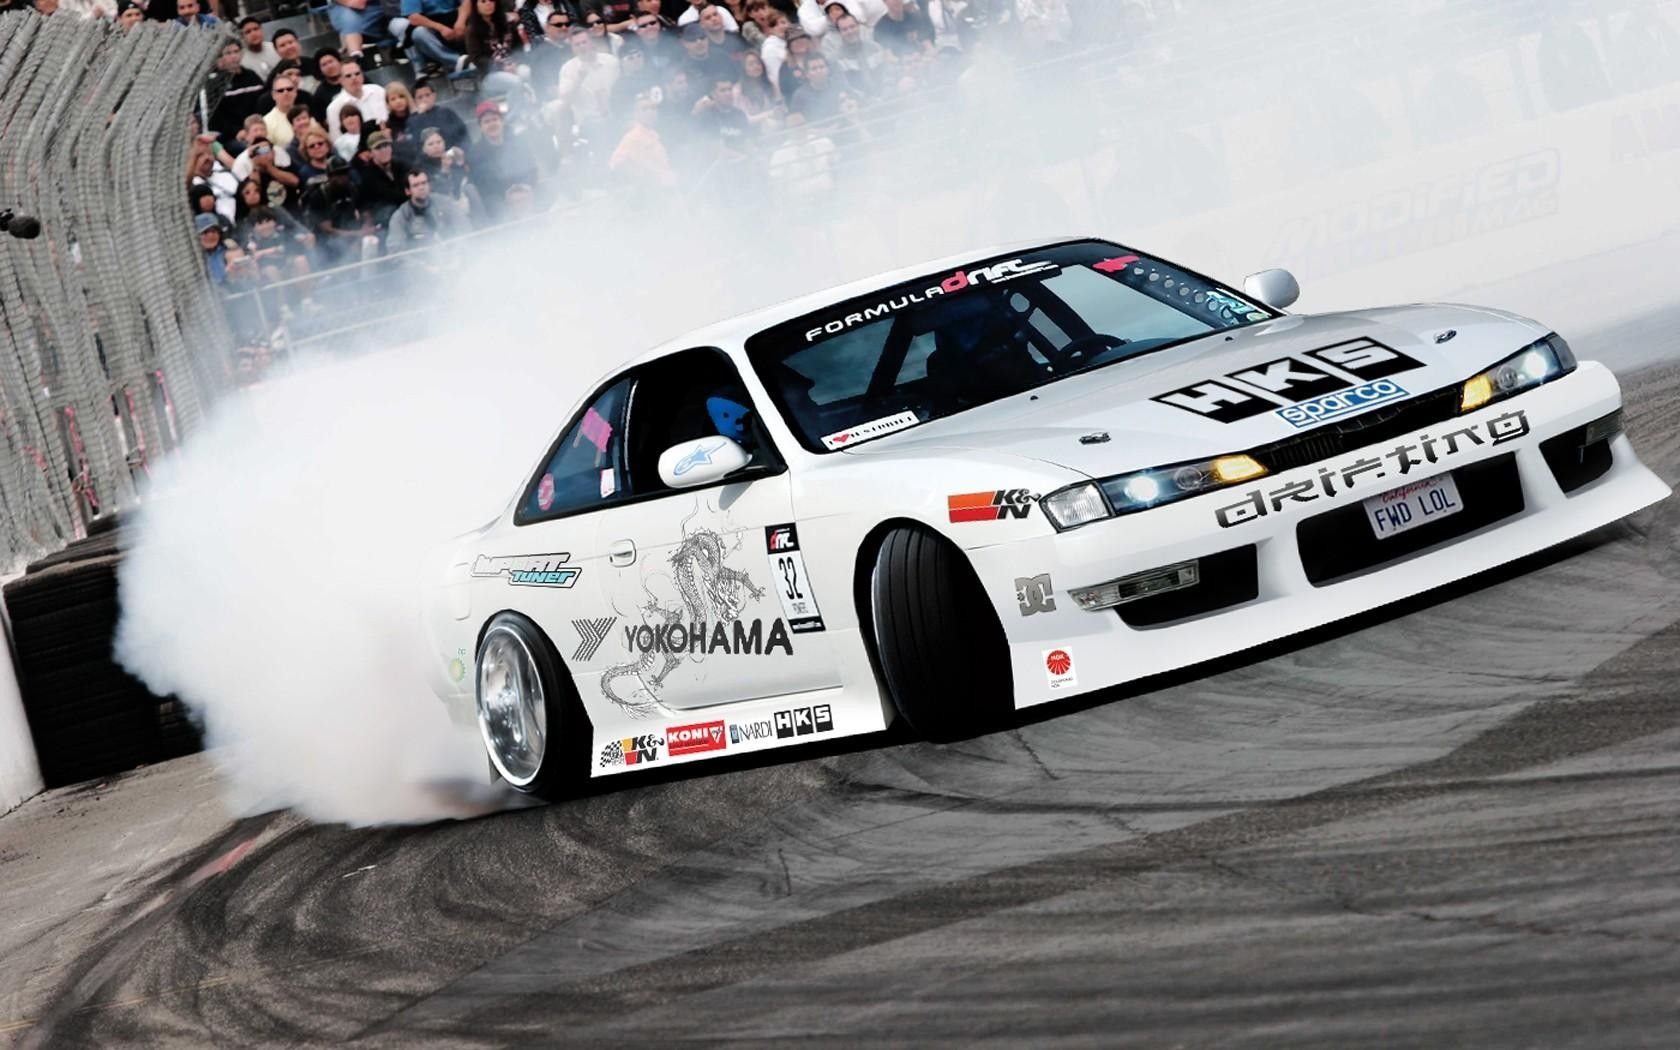 Hd wallpapers hd wallpapers pinterest hd wallpaper nissan and jdm